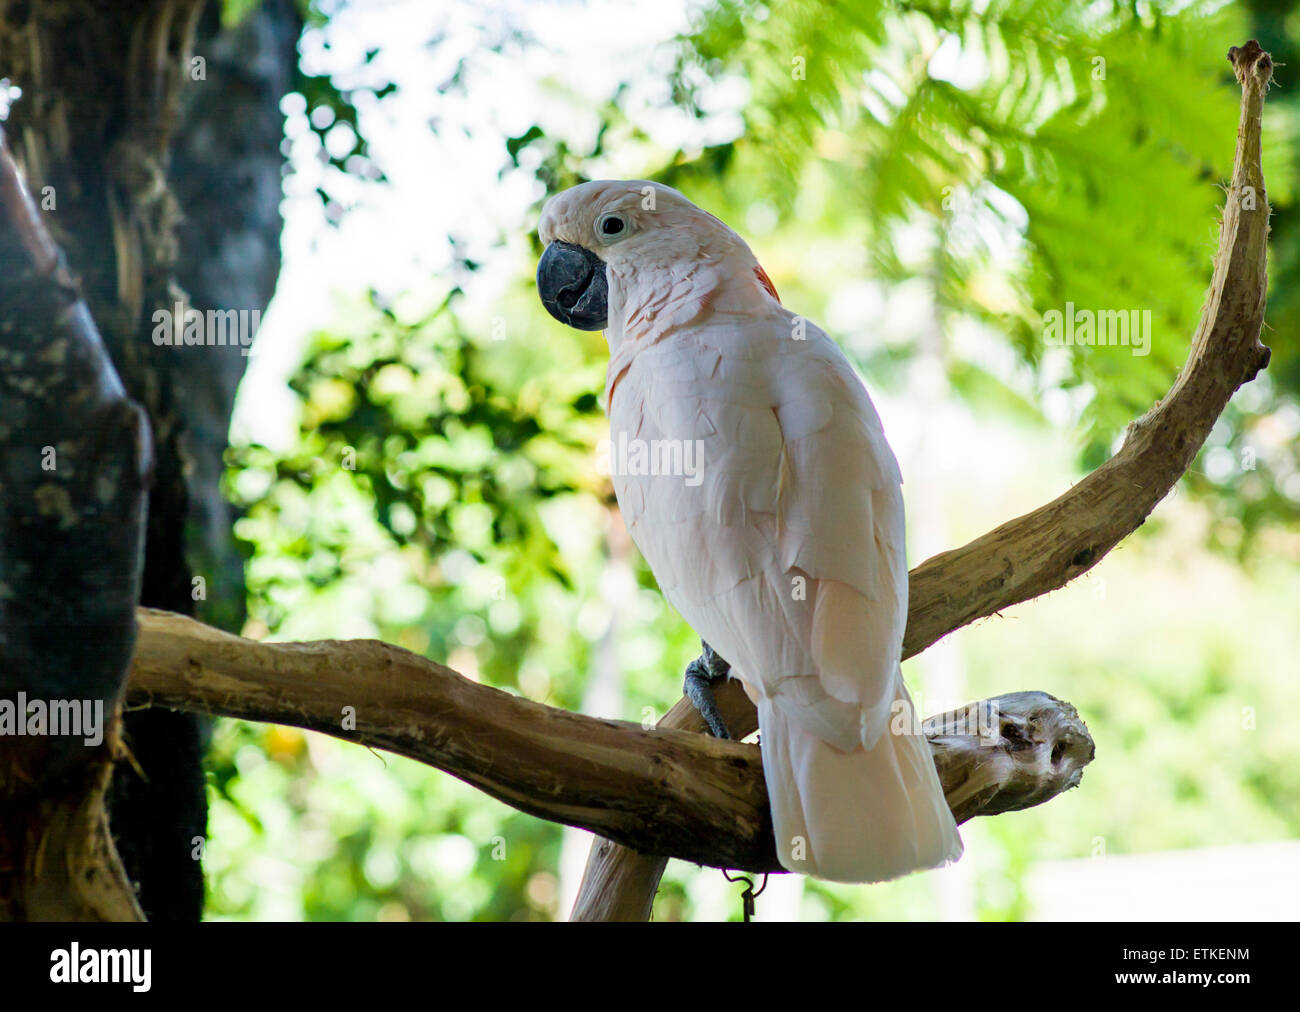 Moluccan Cockatoo, Salmon Crested, Kaua'i Marriott Resort; Kalapaki Bay, Kaua'i, Hawaii, USA - Stock Image